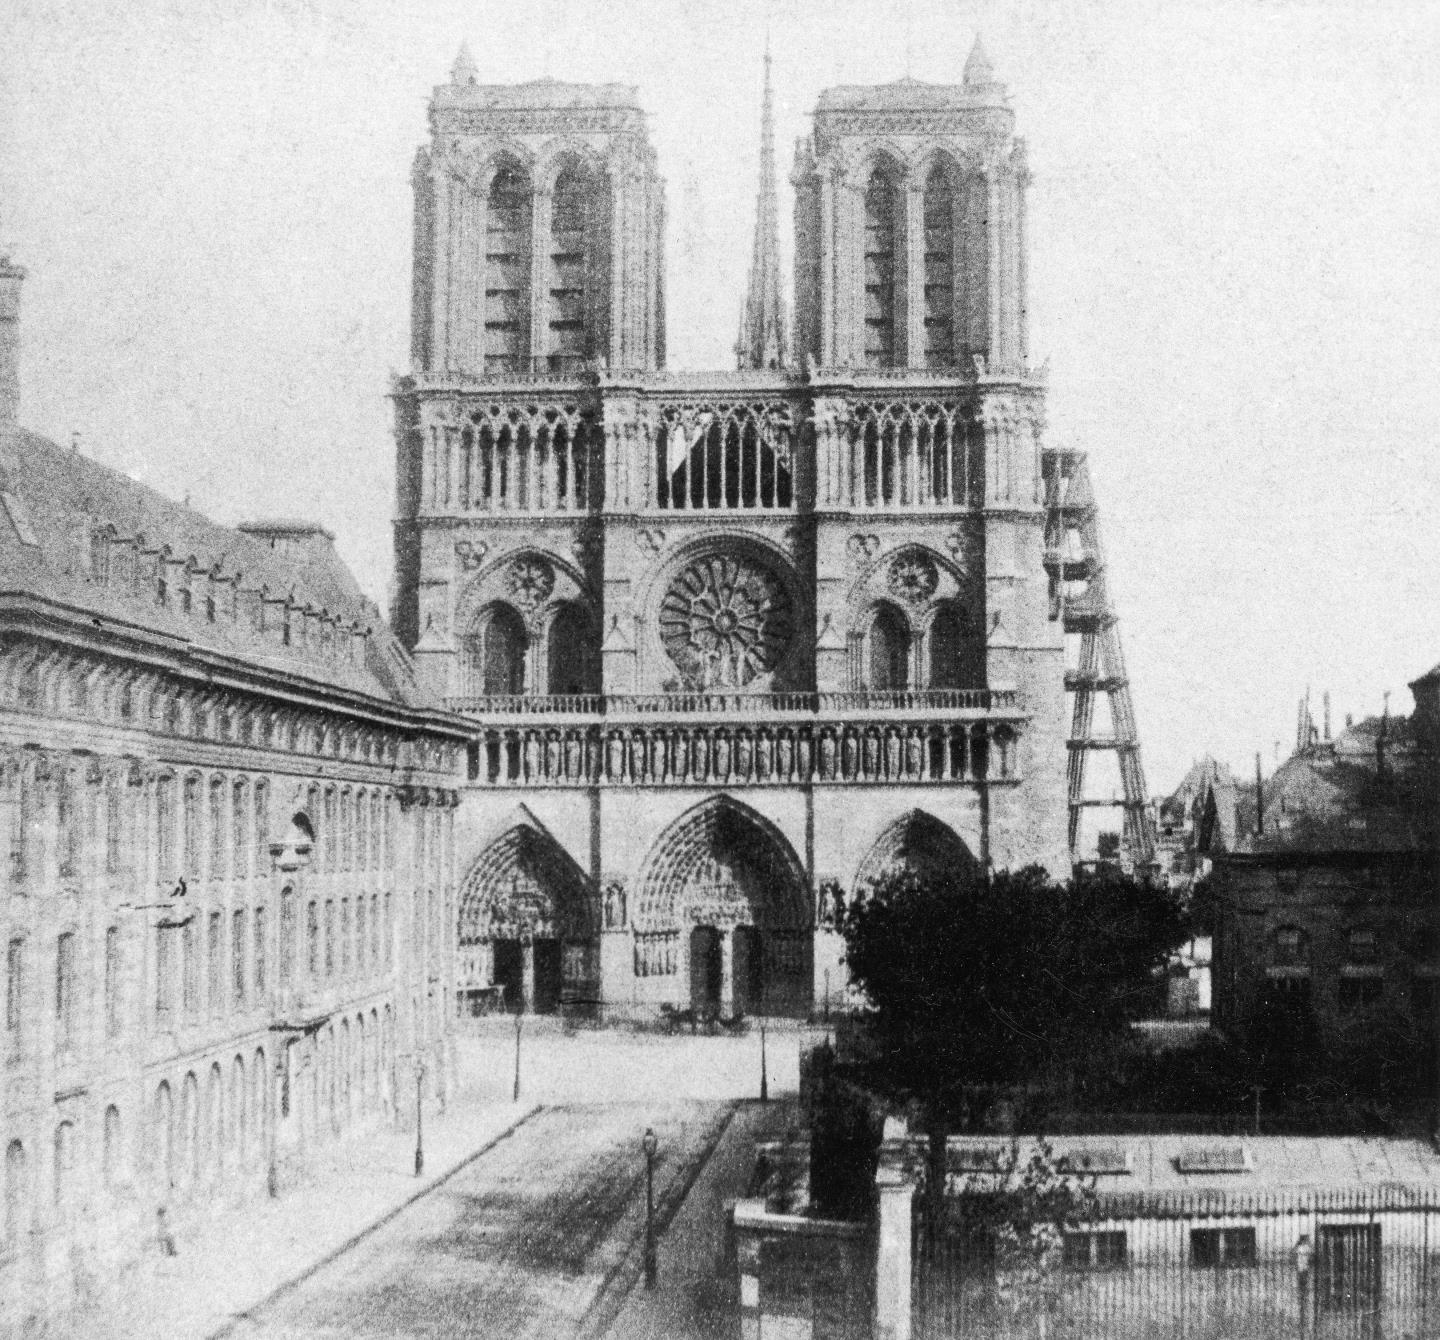 Notre Dame Cathedral in Paris, France, photographed around 1855, during the restoration Led By Eugène Viollet-Le-Duc And Jean Lassus.